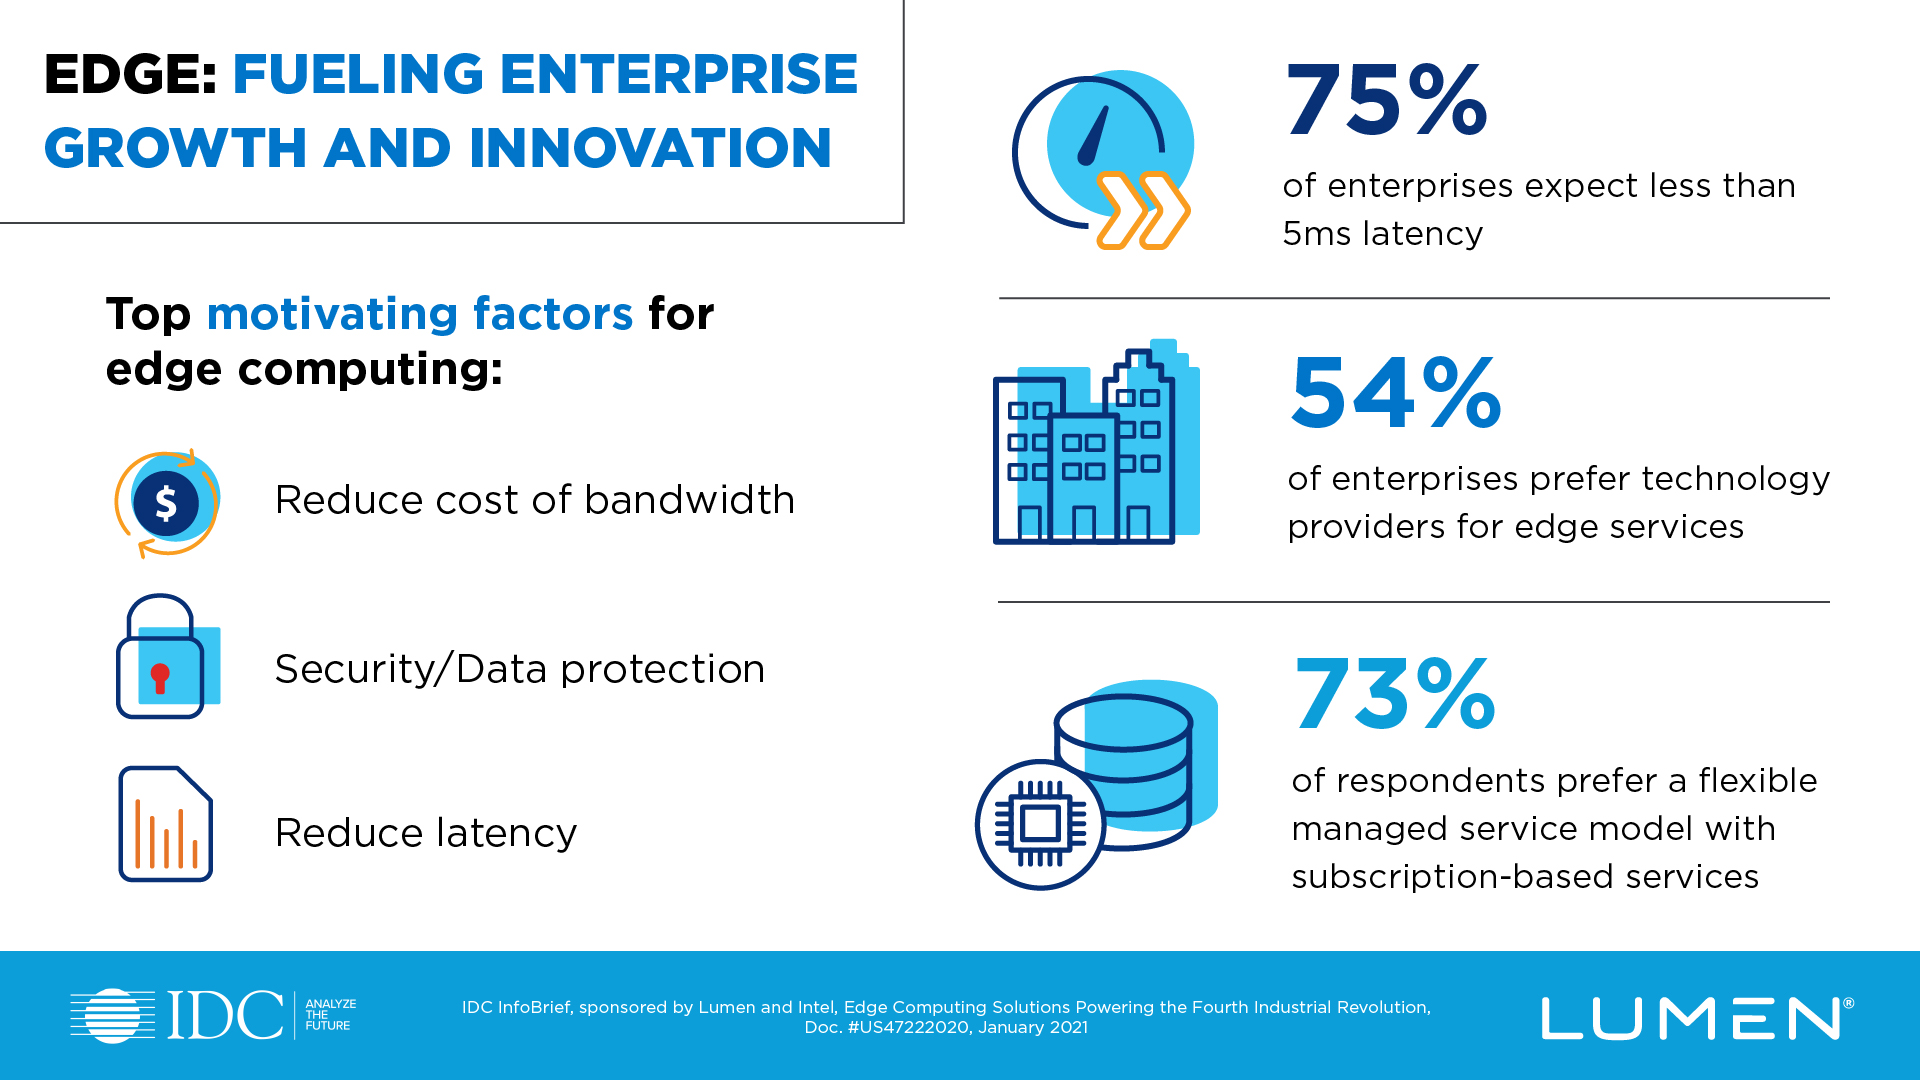 Edge computing is fueling growth and innovation across industries. Discover the top motivating factors for global business leaders moving to the edge.